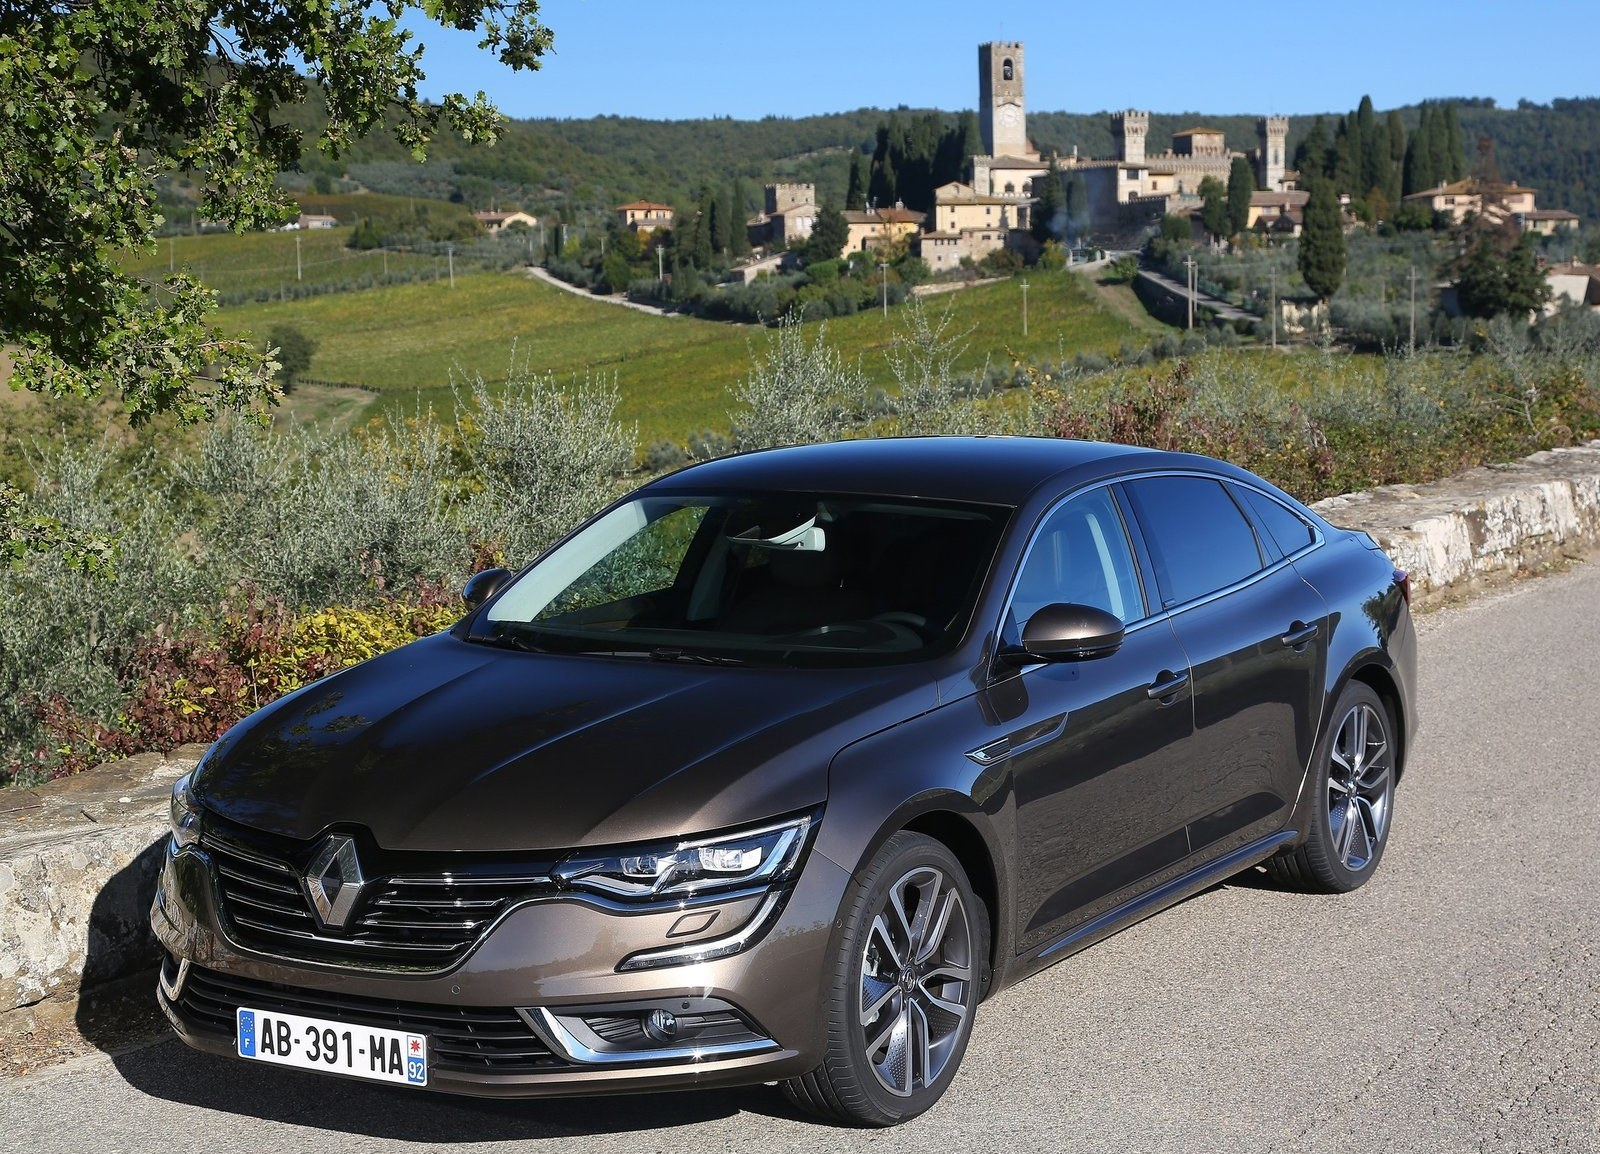 2016 renault talisman cars exclusive videos and photos updates. Black Bedroom Furniture Sets. Home Design Ideas